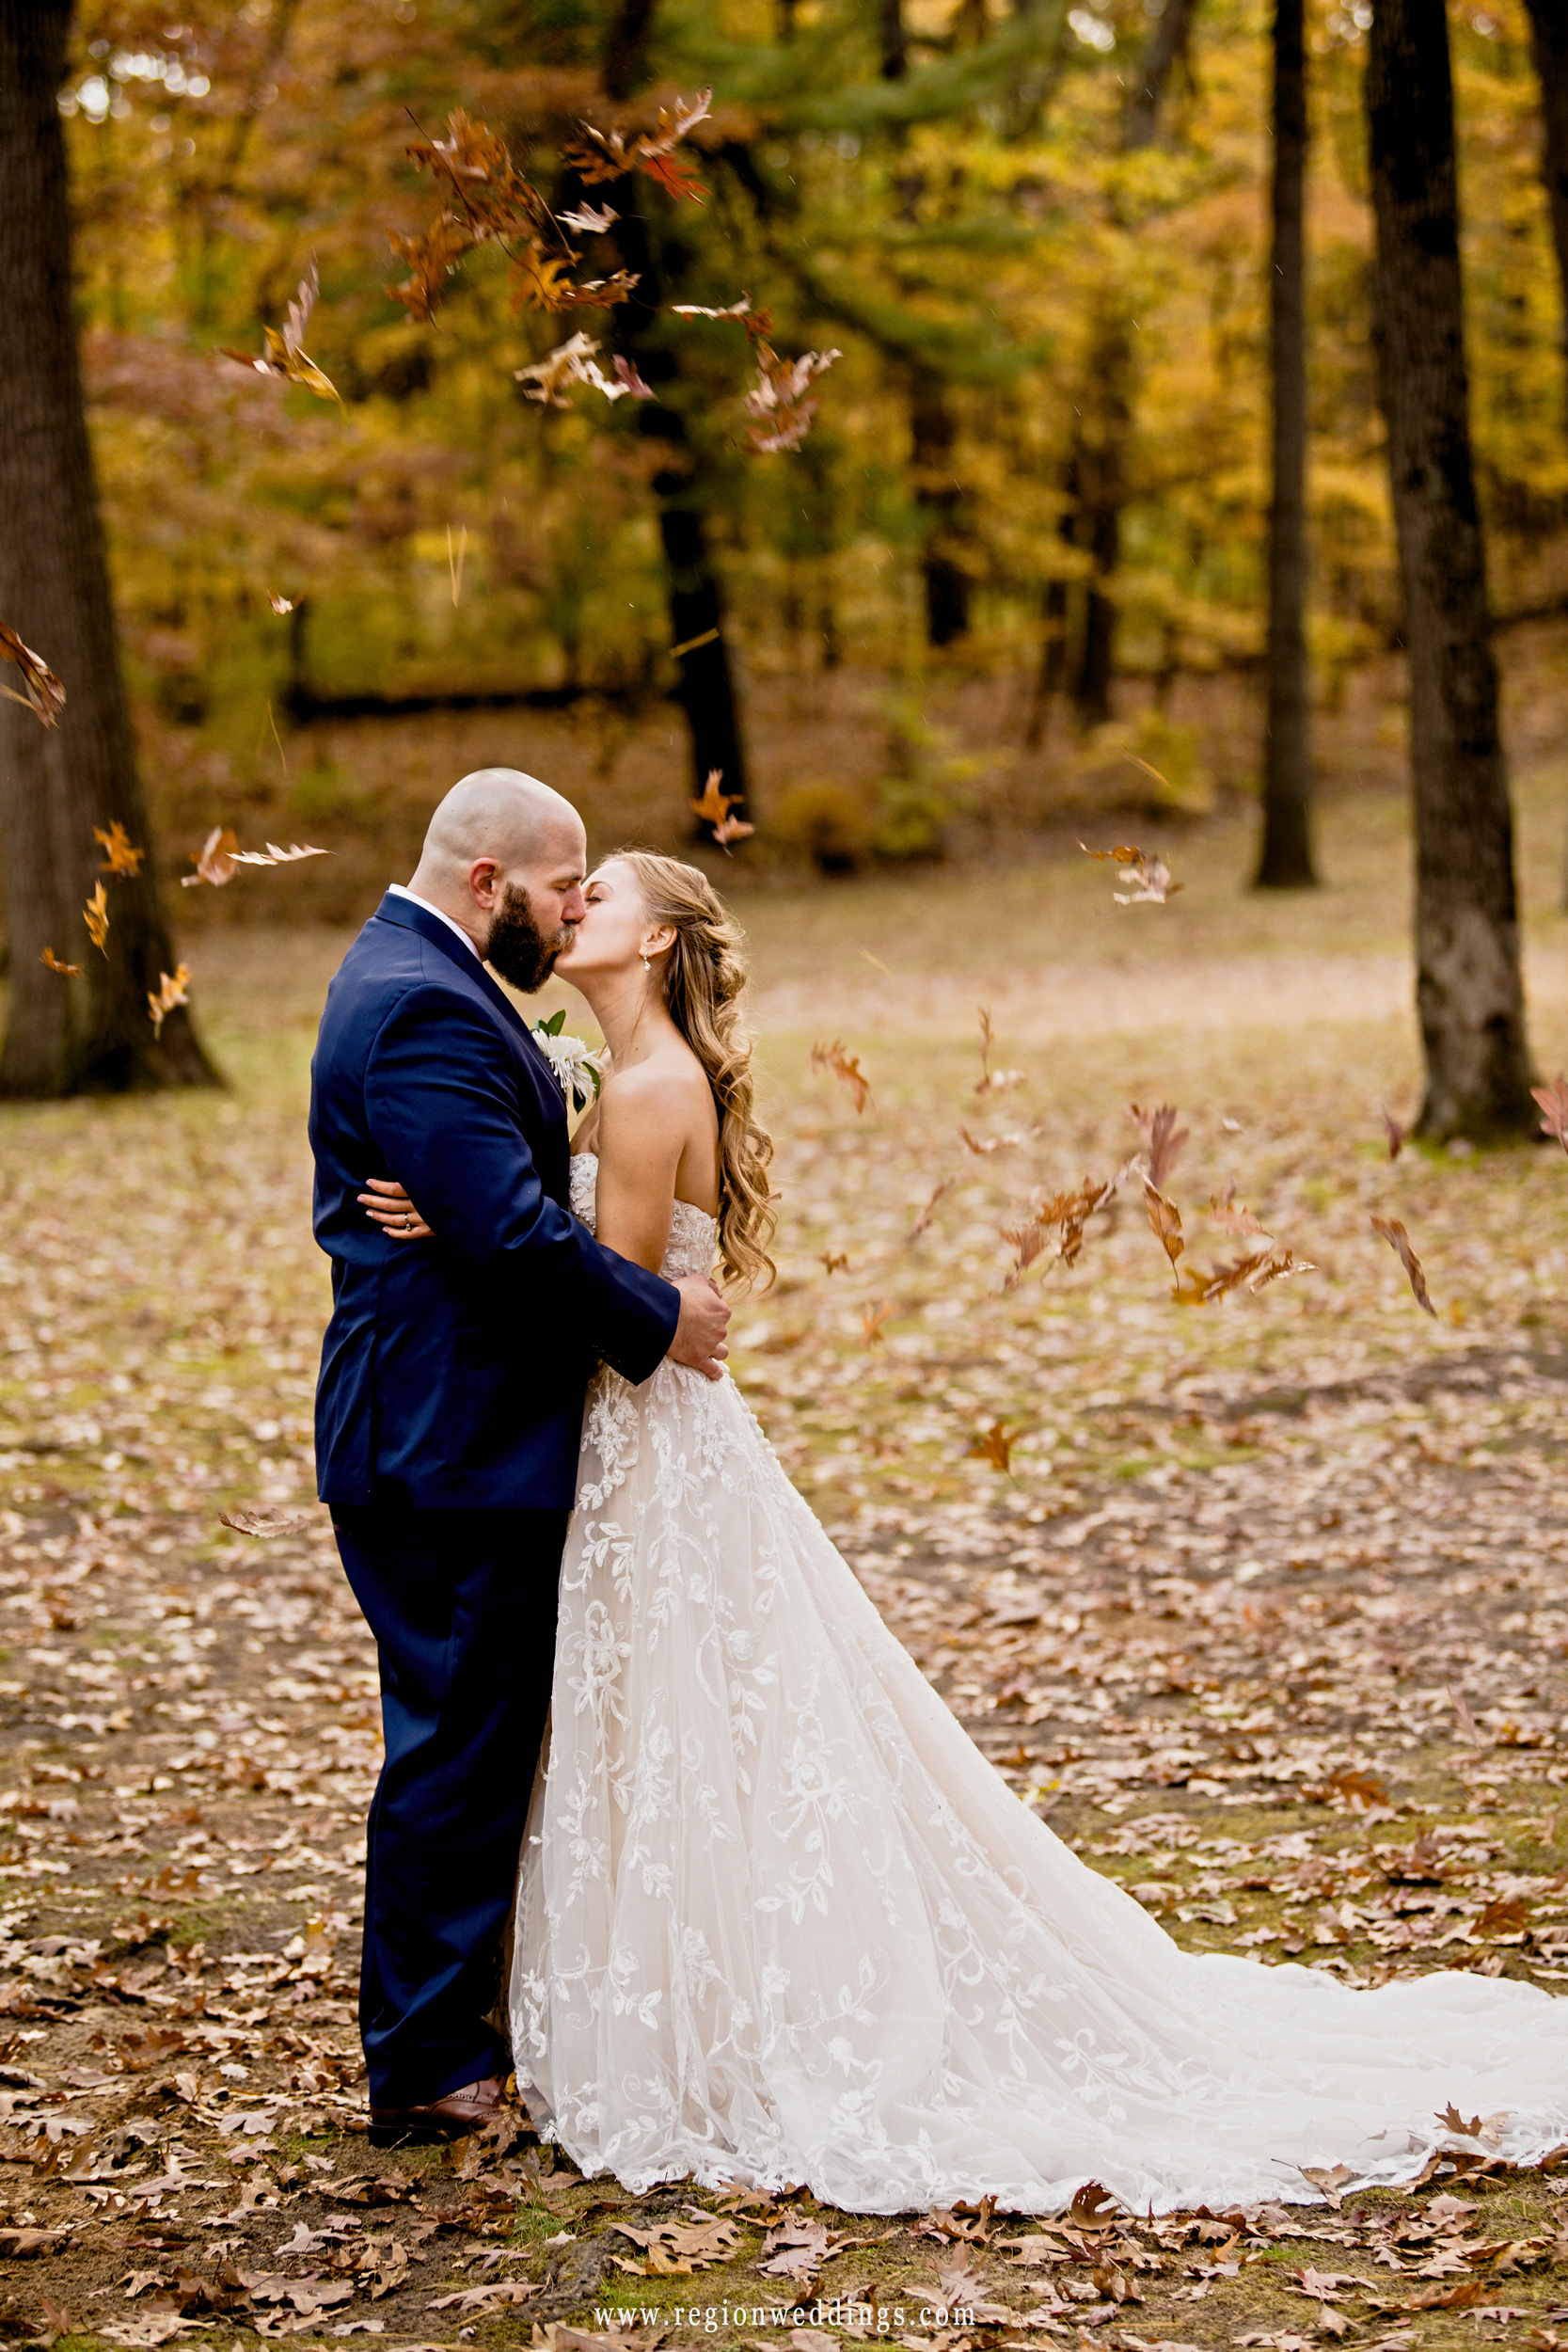 Leaves fall upon the bride and groom.